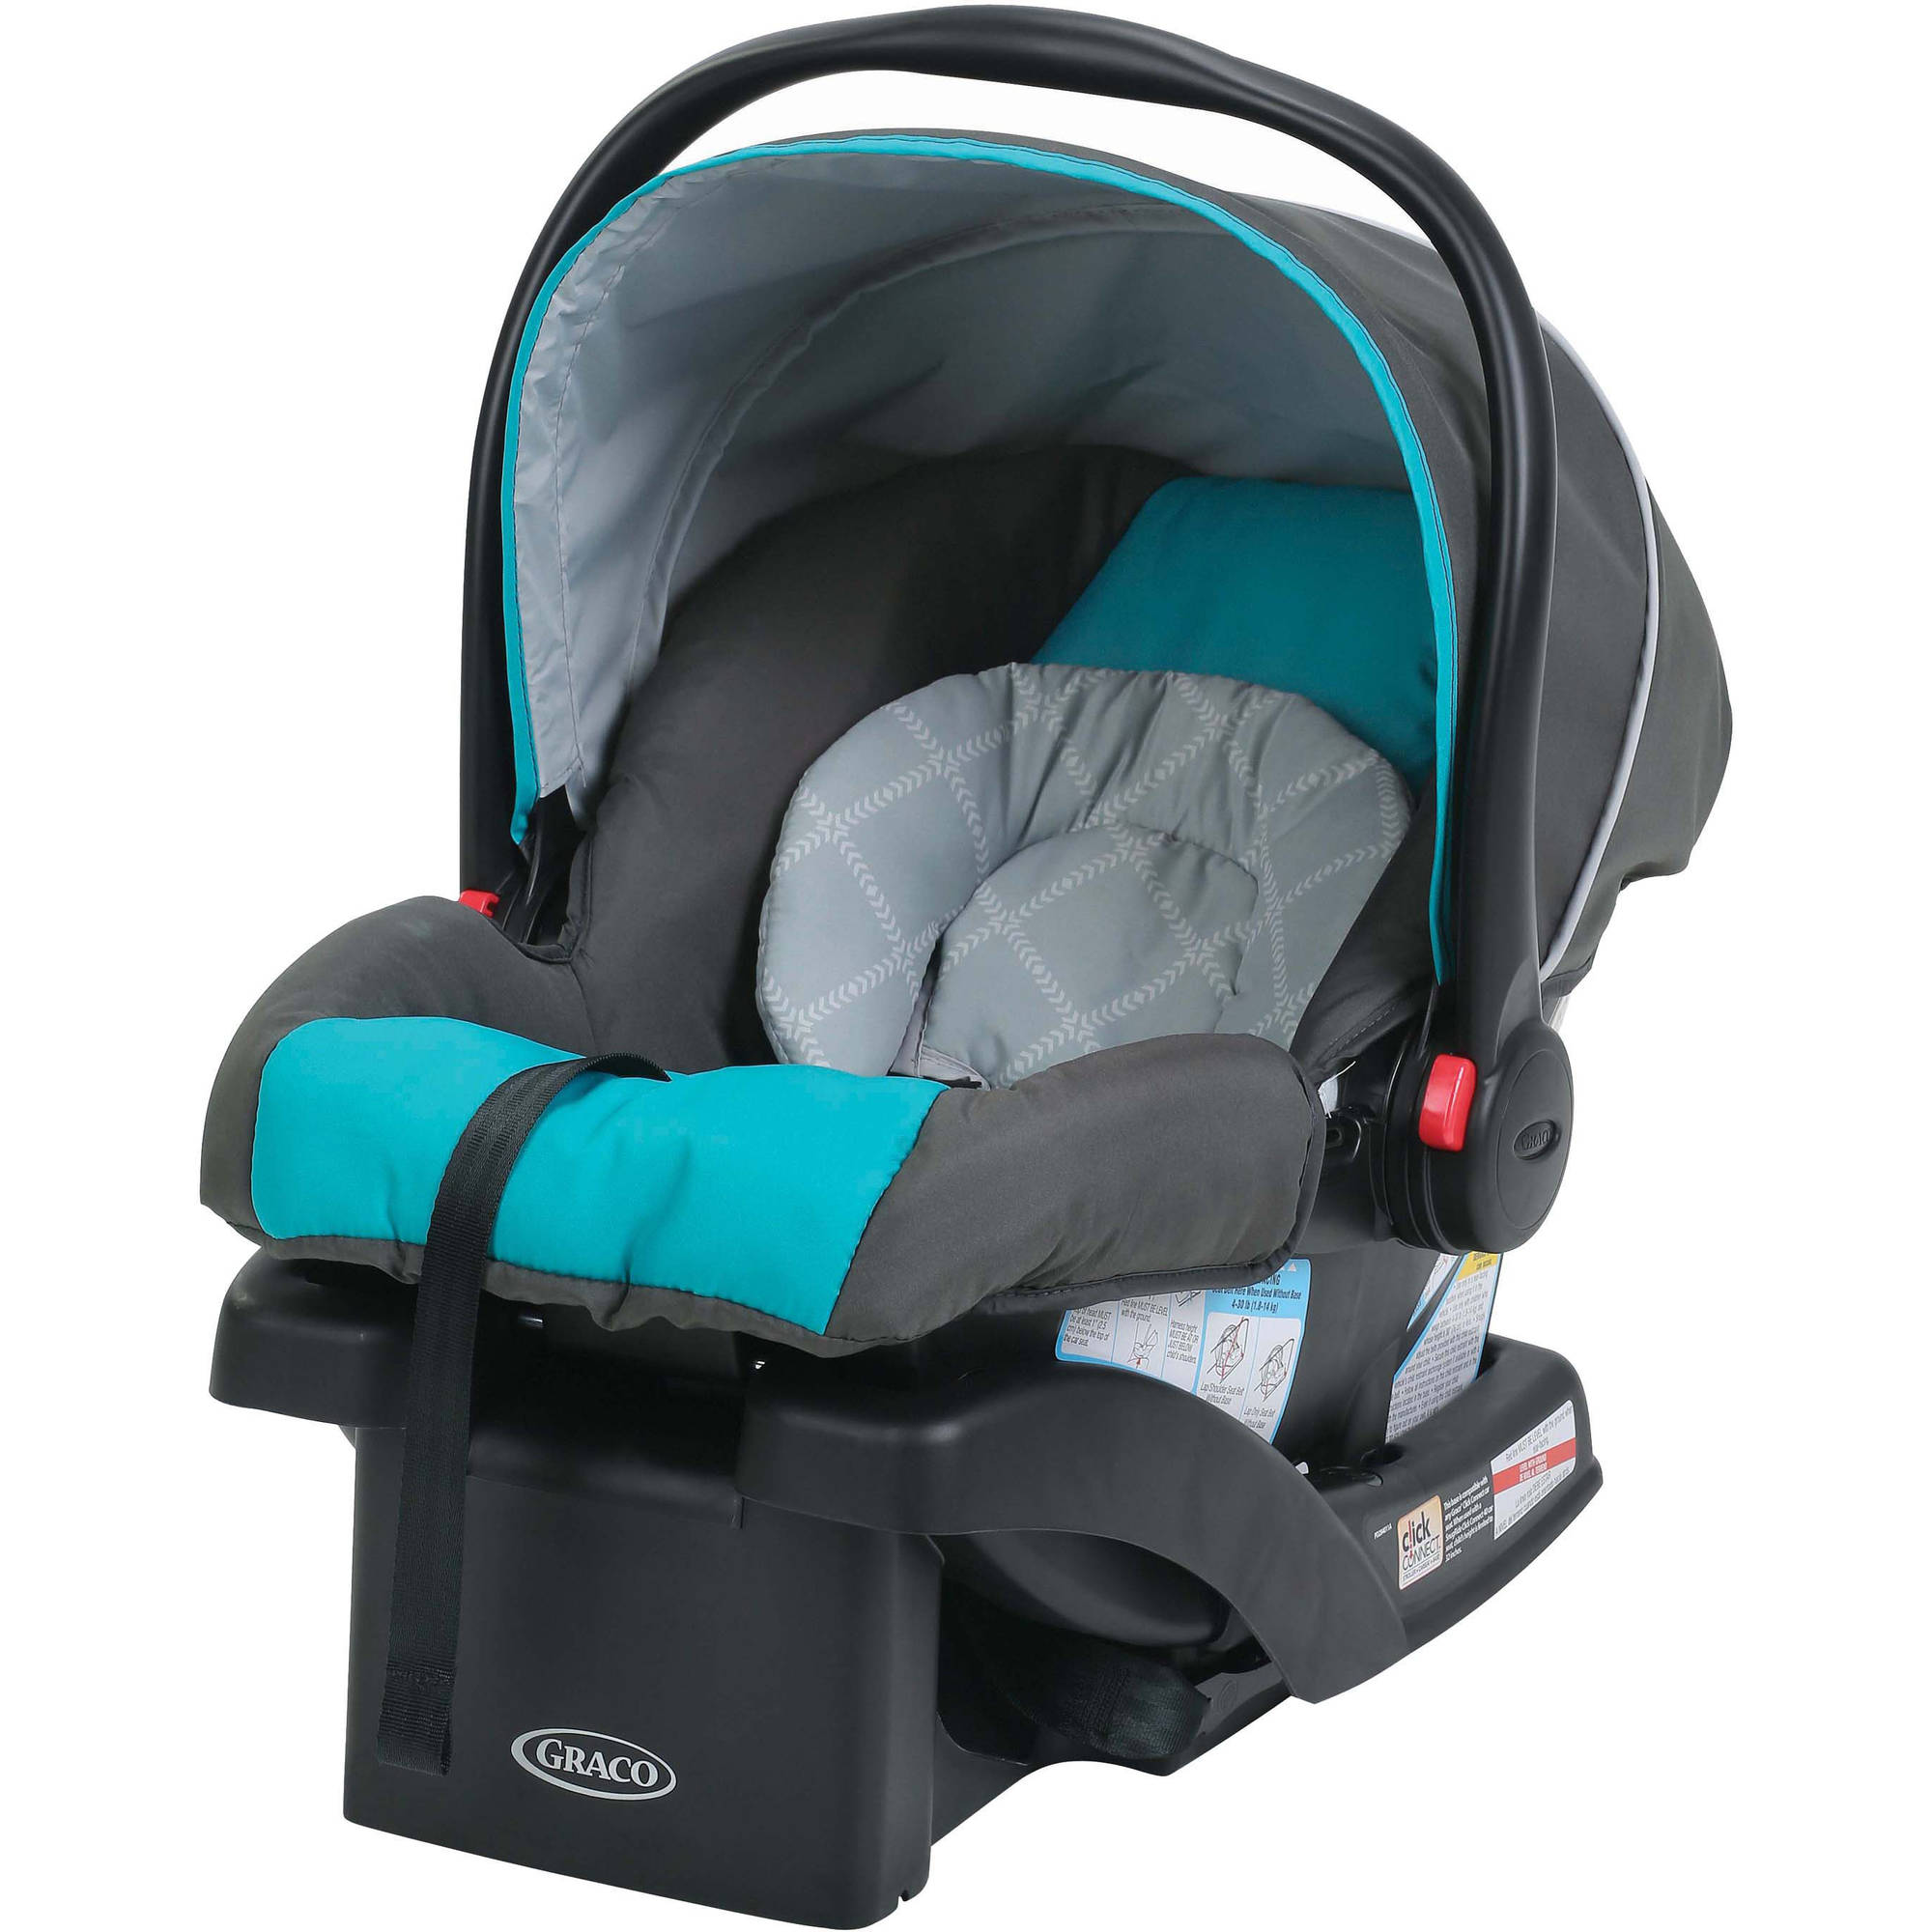 Graco SnugRide 30 Click Connect Infant Car Seat with Front Adjust, Finch